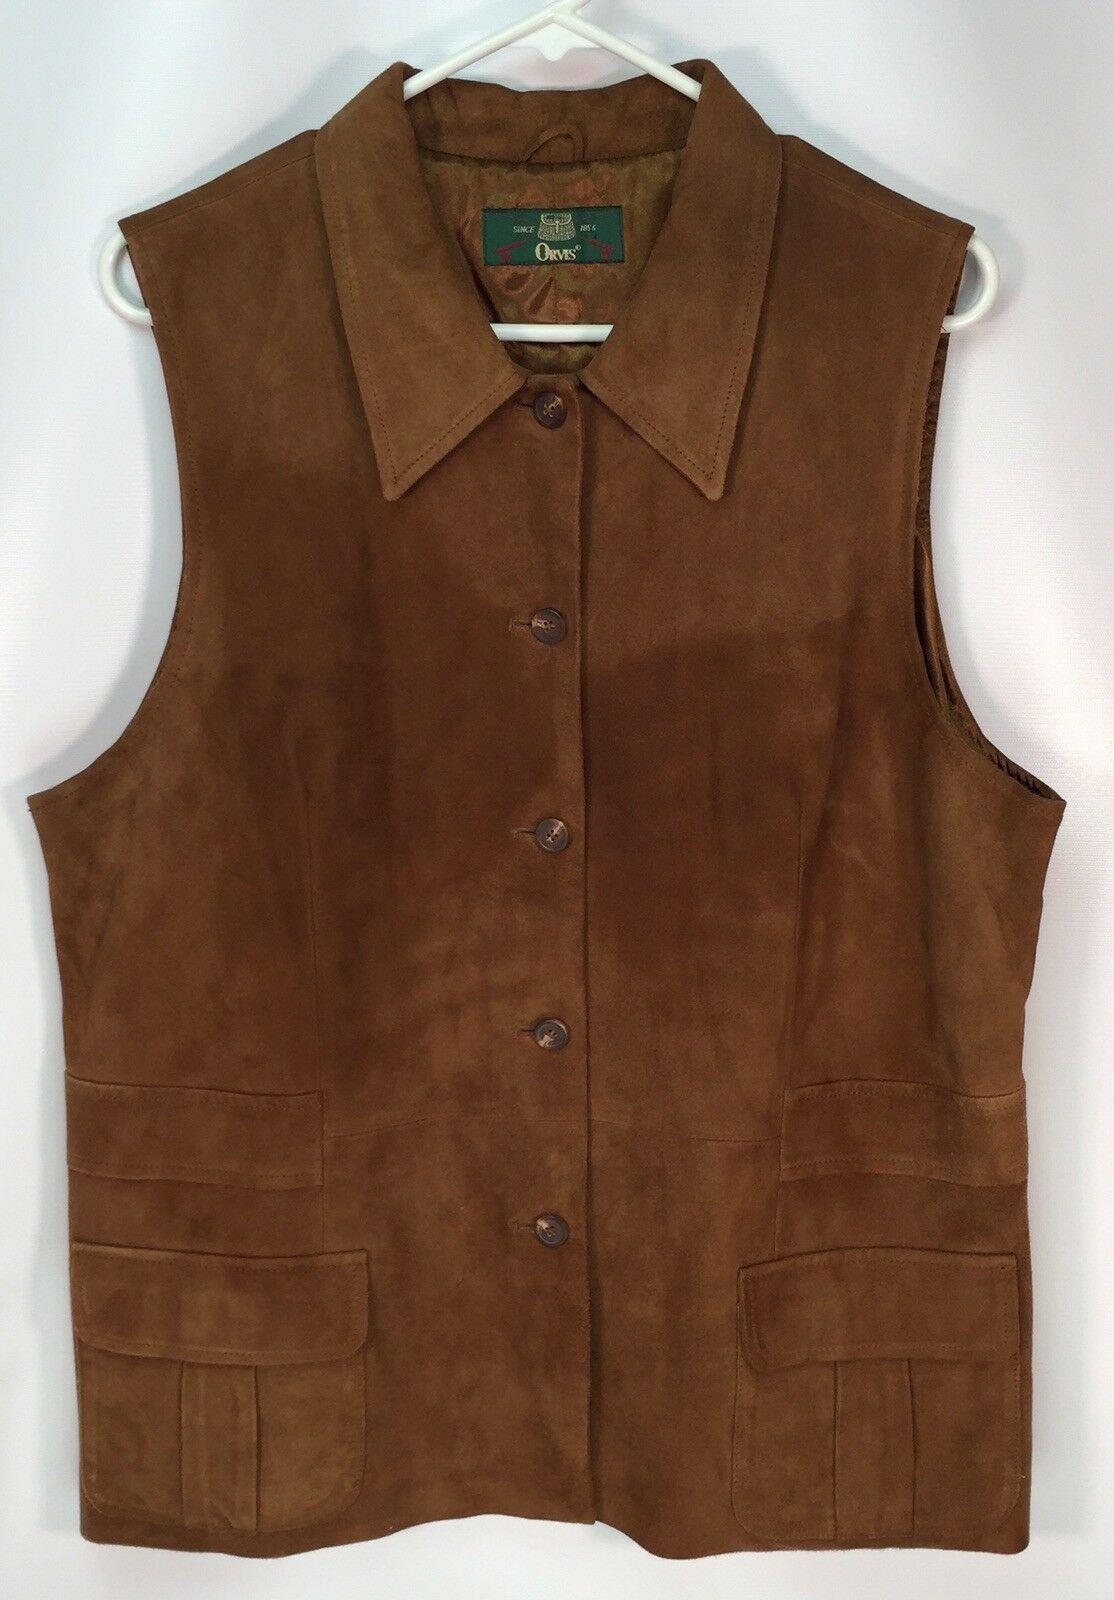 Orvis Womens Large Leather Suede Vest Brown Button Up Utility Hunting Fishing